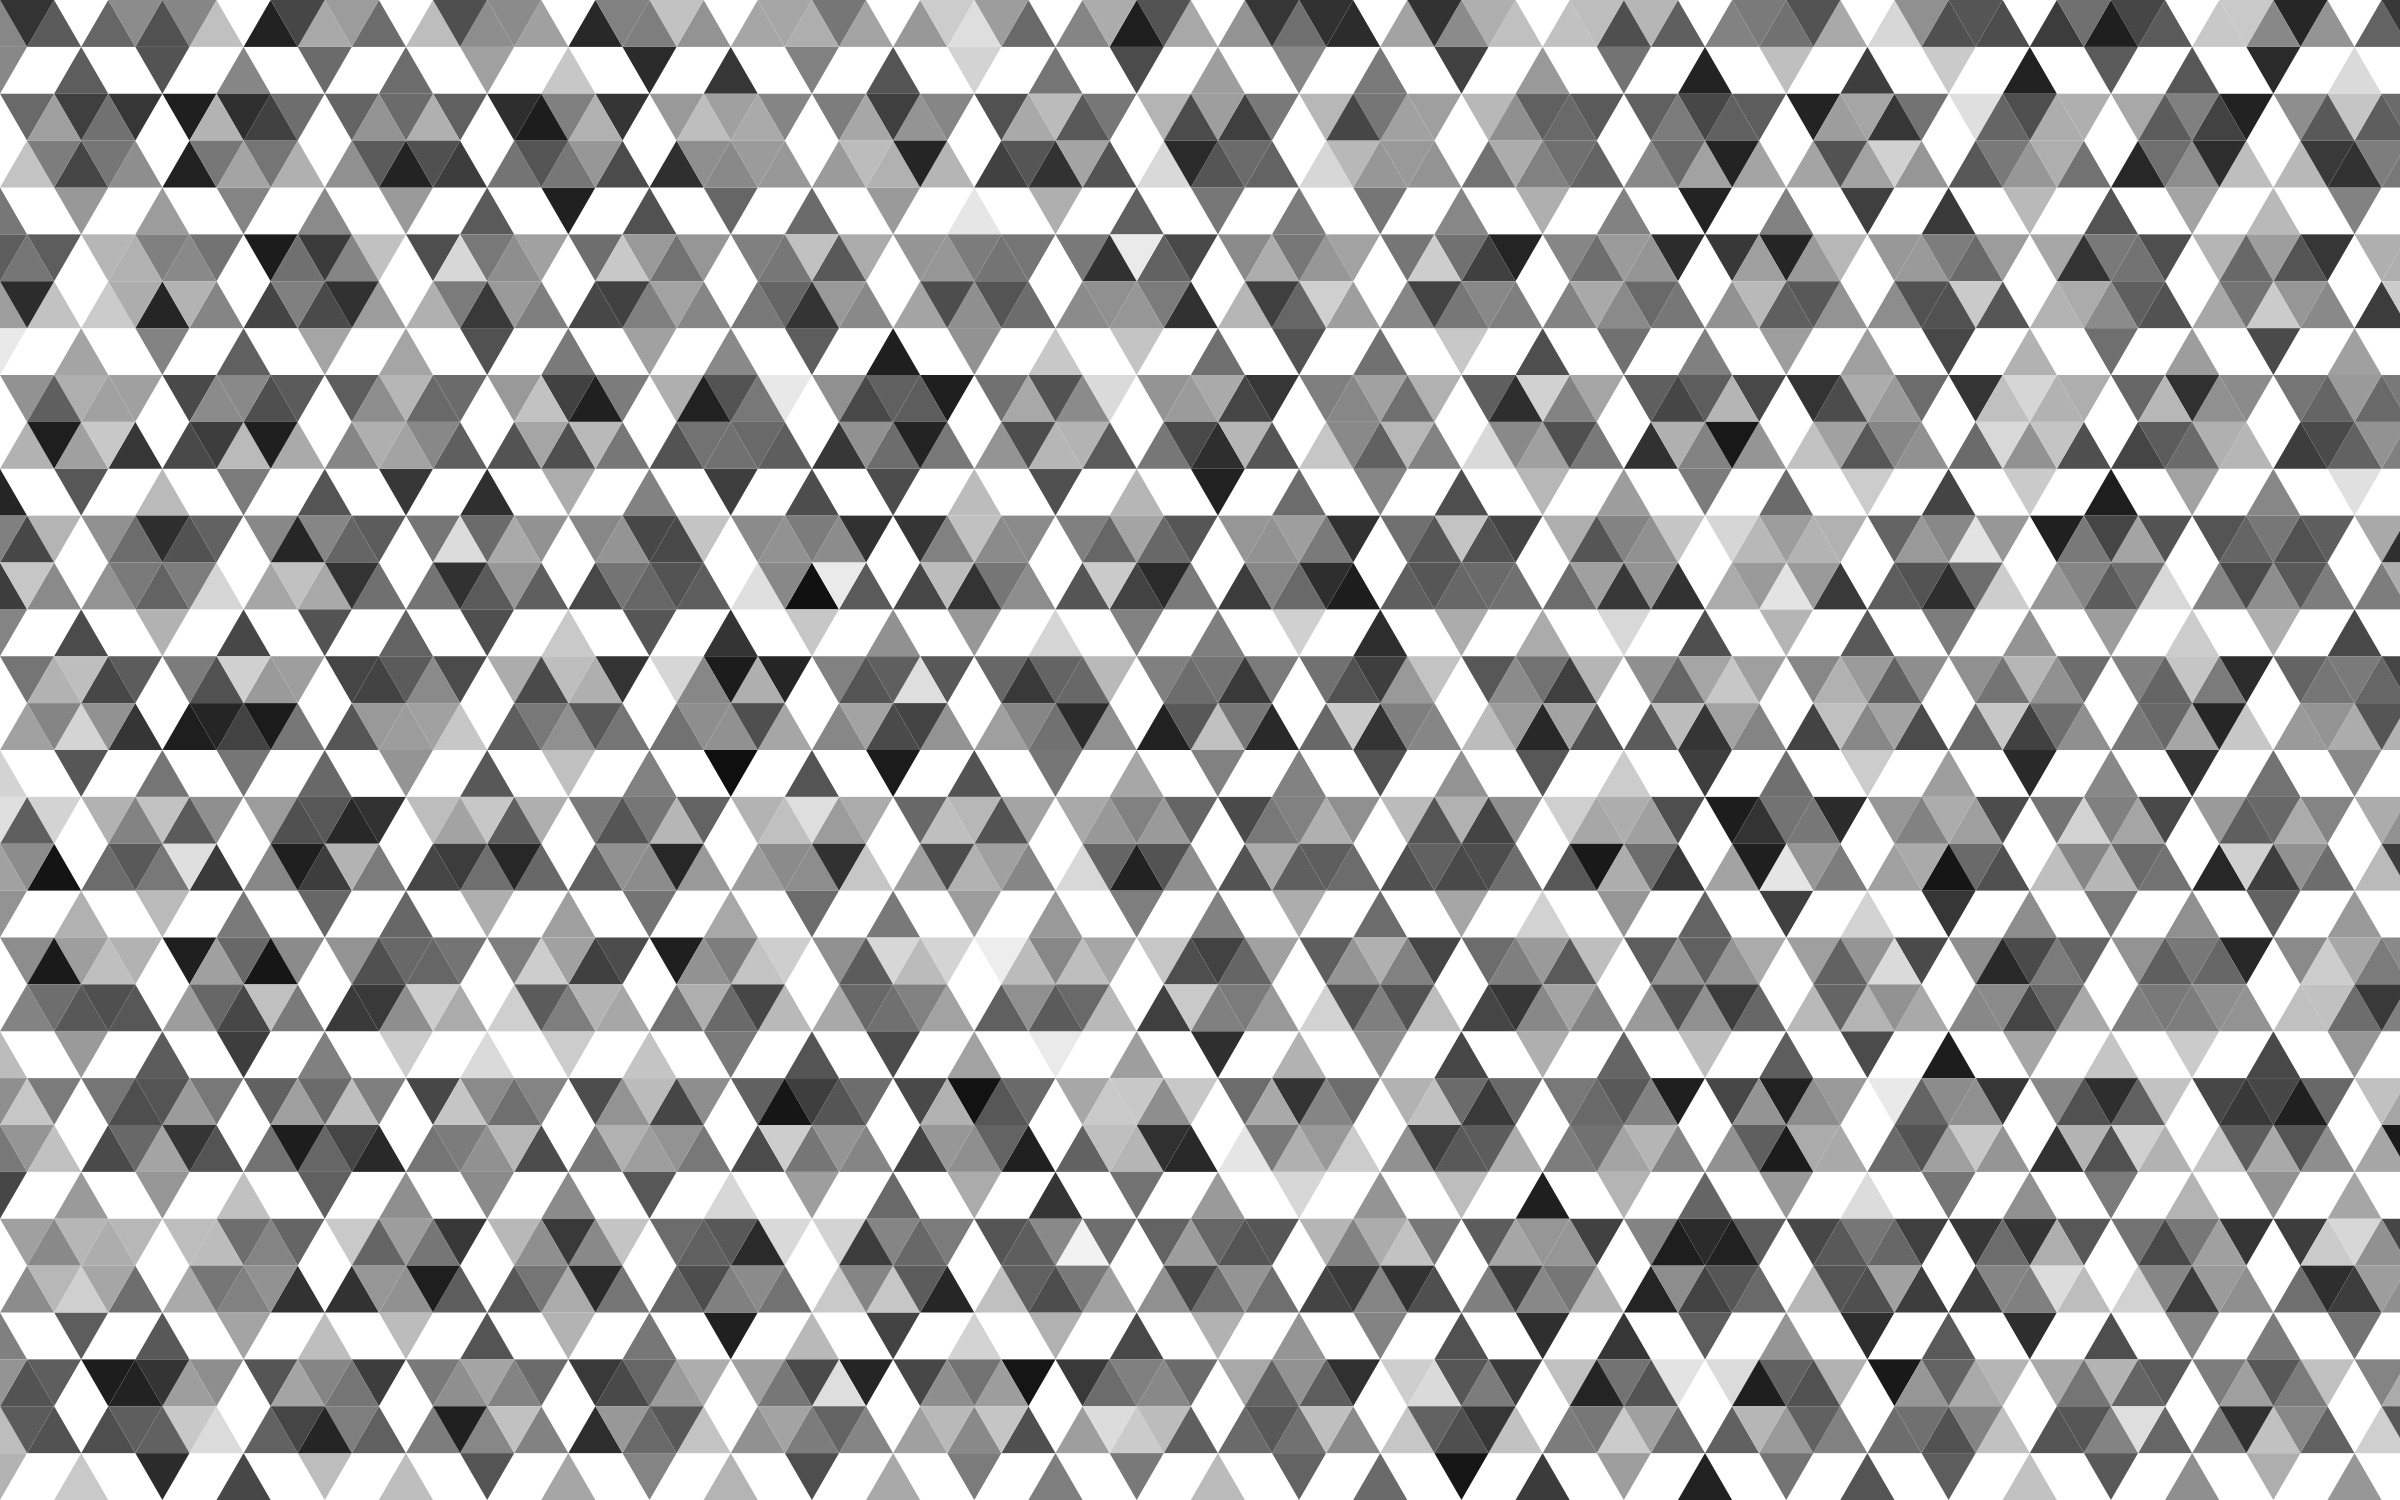 Geometric Pattern Fair Clipart  Grayscale Geometric Pattern Design Ideas